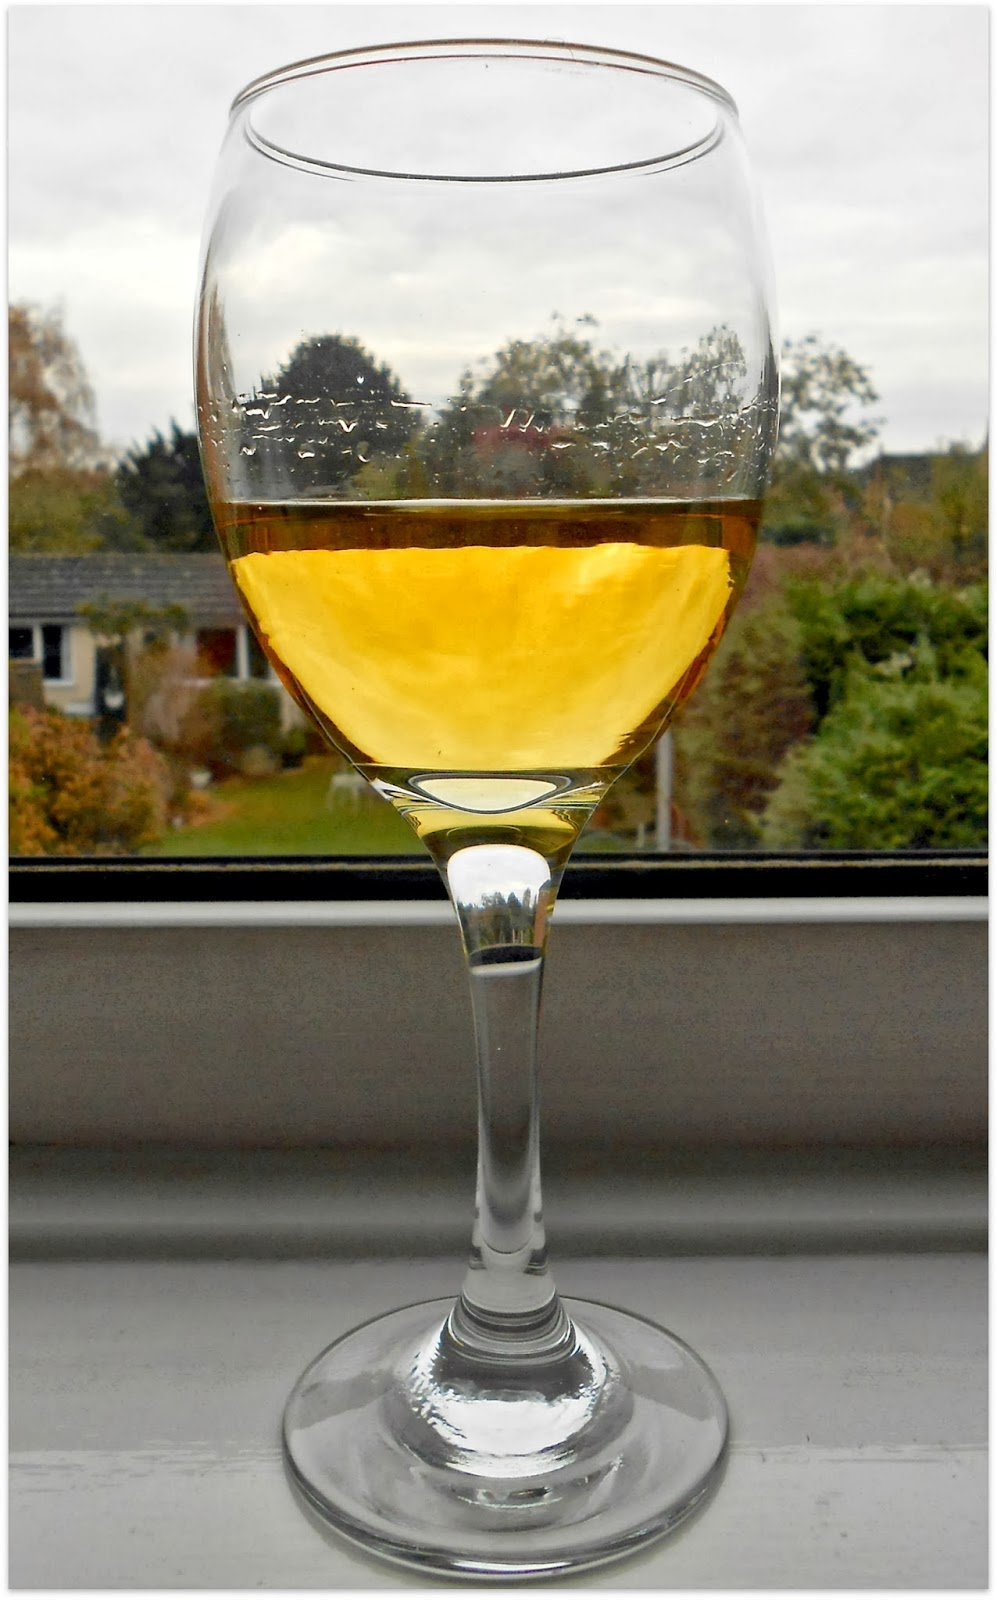 Glass of Sweet Muscat Organic White Wine